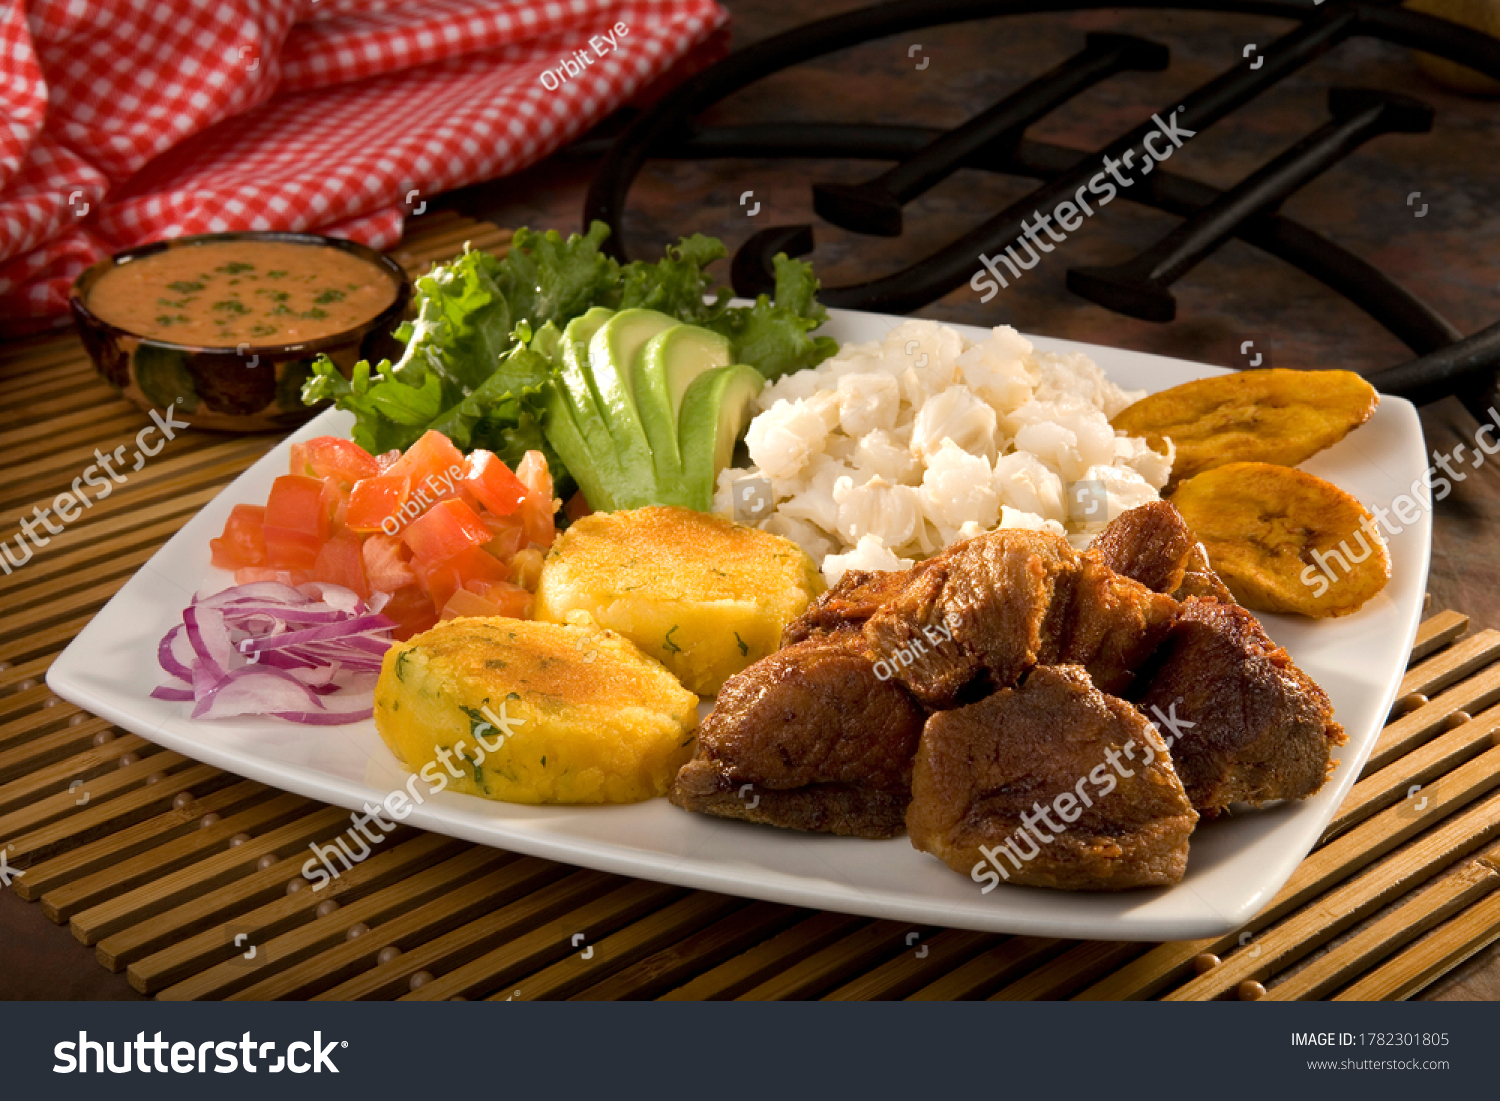 "Traditional and famous Ecuadorian dish called ""Fritada"". It's a braised pork dish that is served always with potato fried cakes, cooked corn kernels with egg, avocado, plantains, tomato and onions. #1782301805"